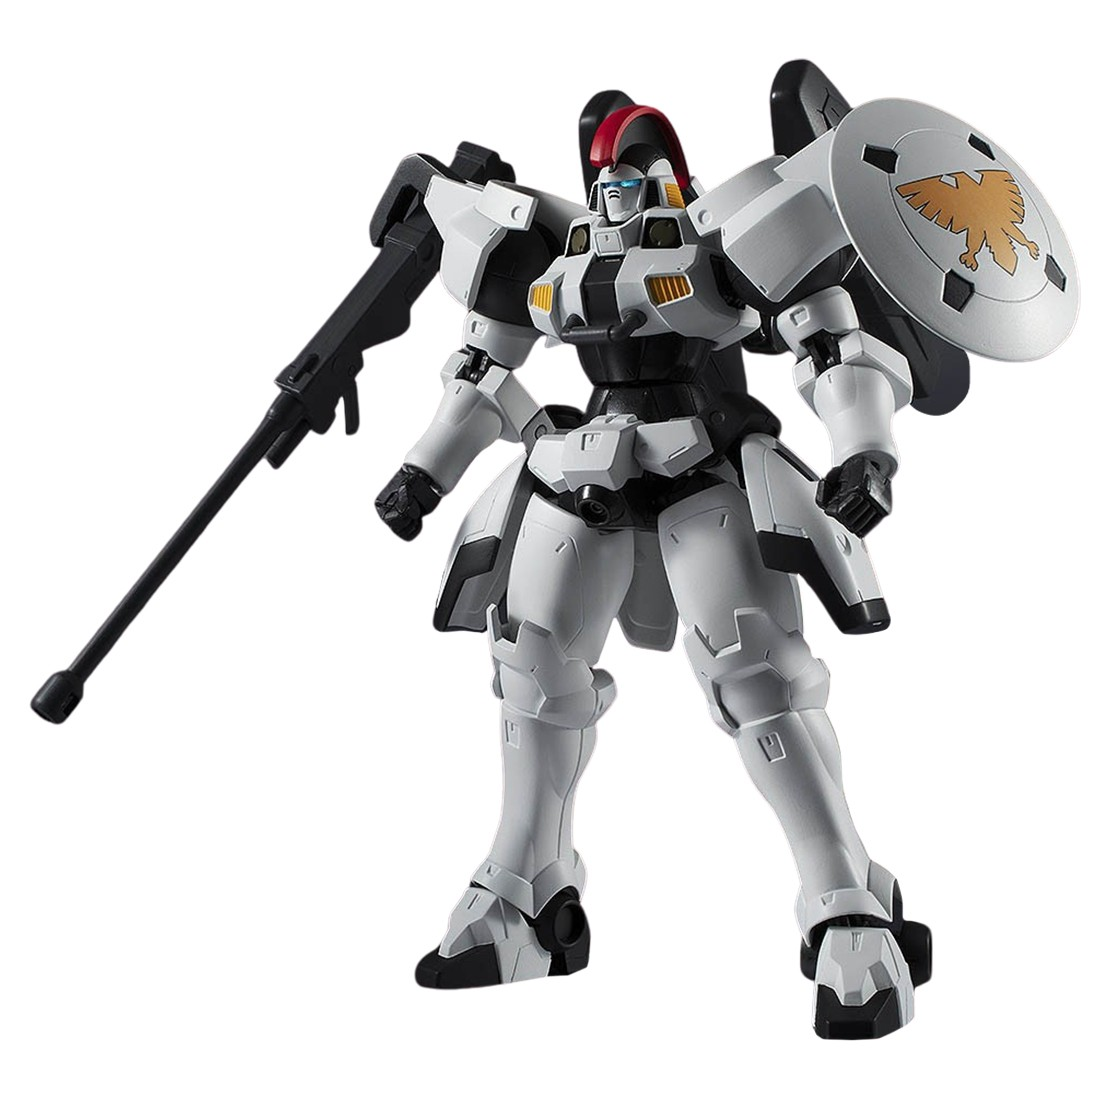 Bandai Gundam Universe New Mobile Report Gundam Wing Oz 00ms Tallgeese Figure White The tallgeese iii is based on the previous two models and, like them. bait